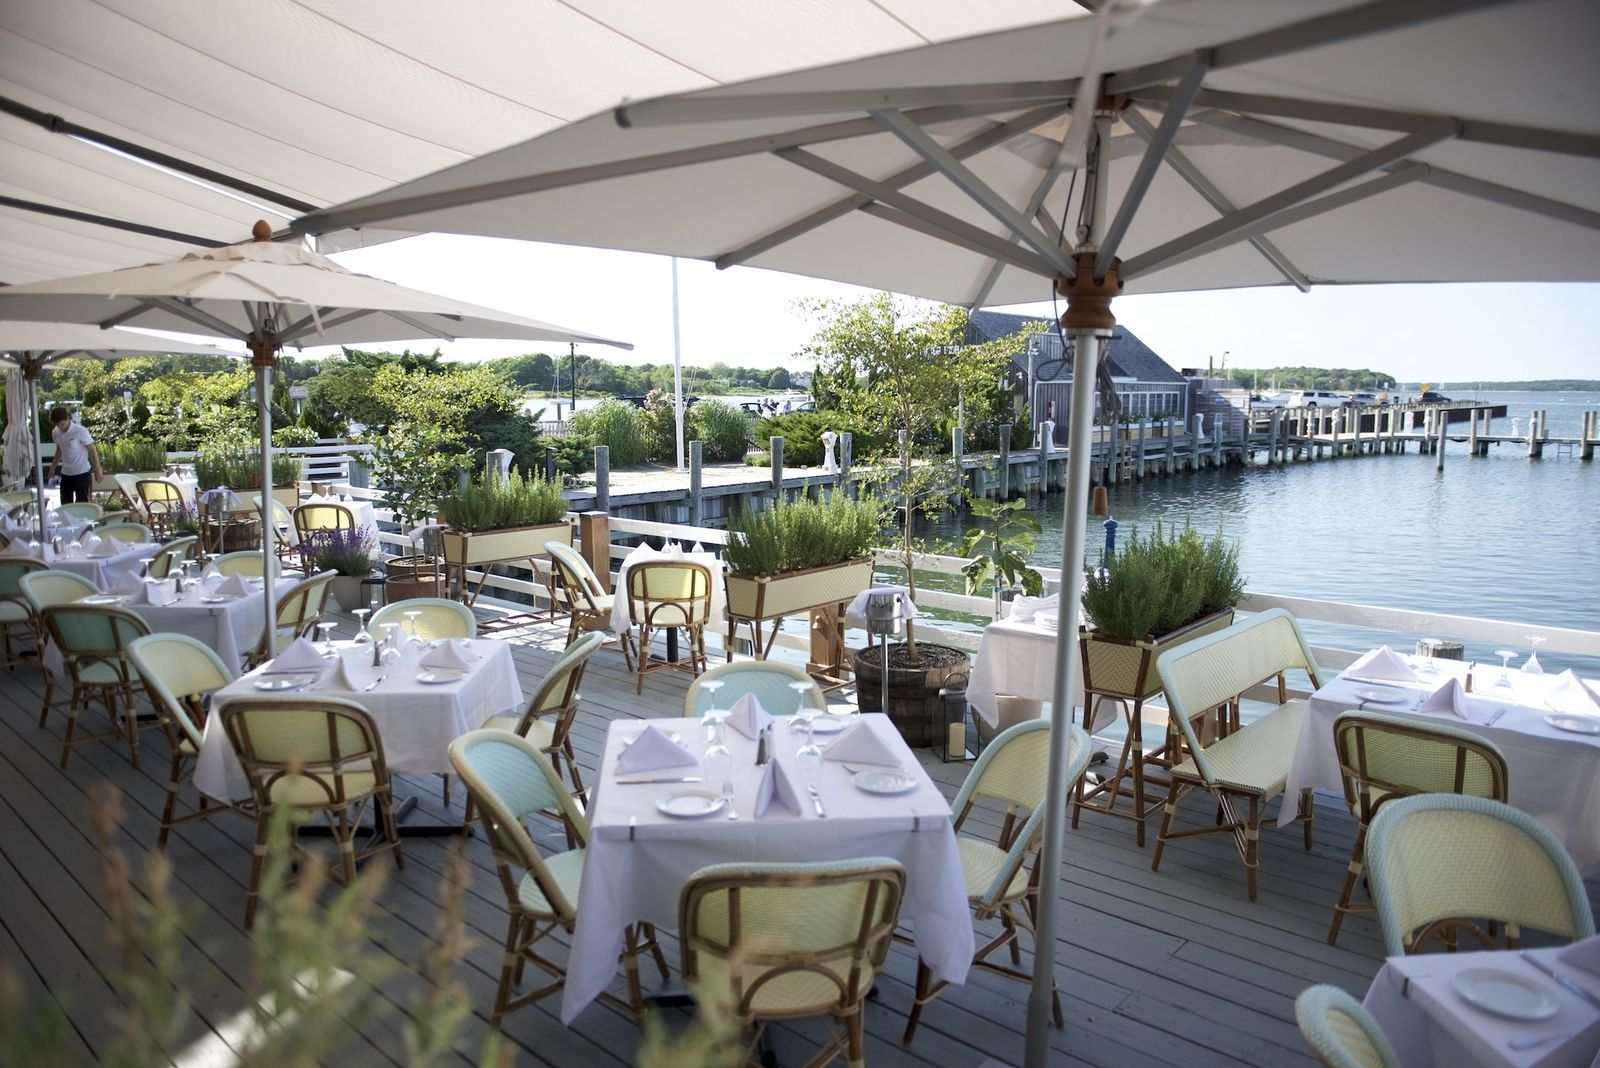 How sag harbor became the most desirable part of the hamptons